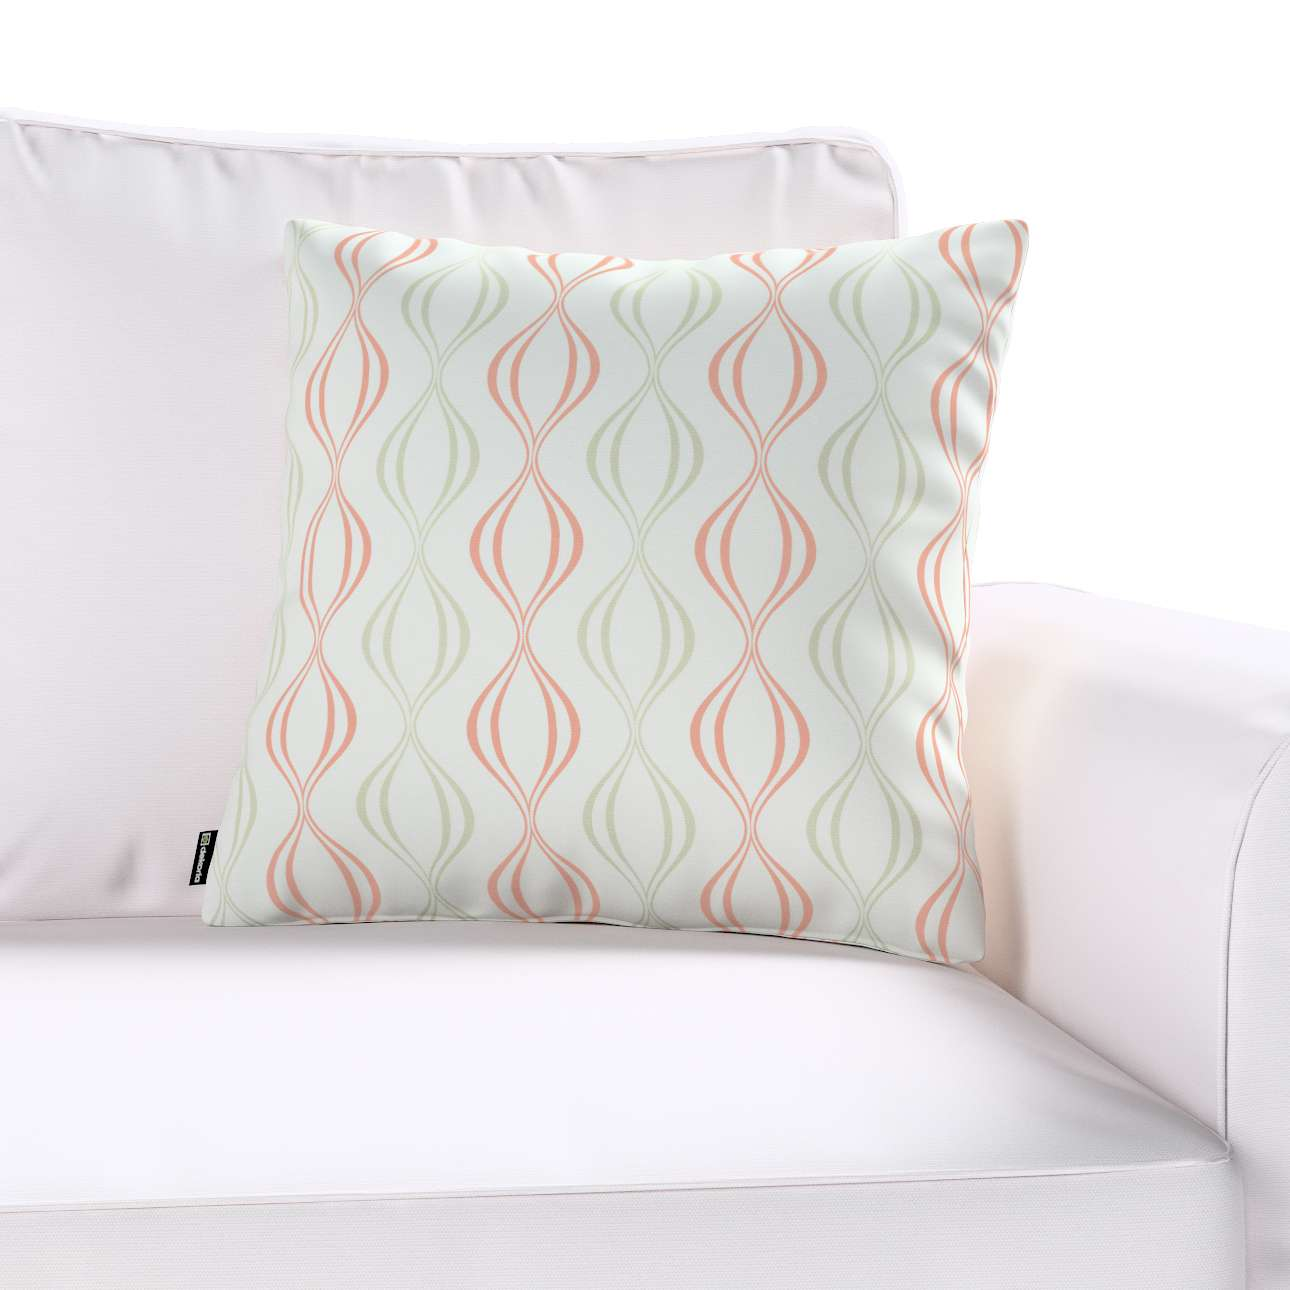 Kinga cushion cover 43 x 43 cm (17 x 17 inch) in collection Geometric, fabric: 141-49